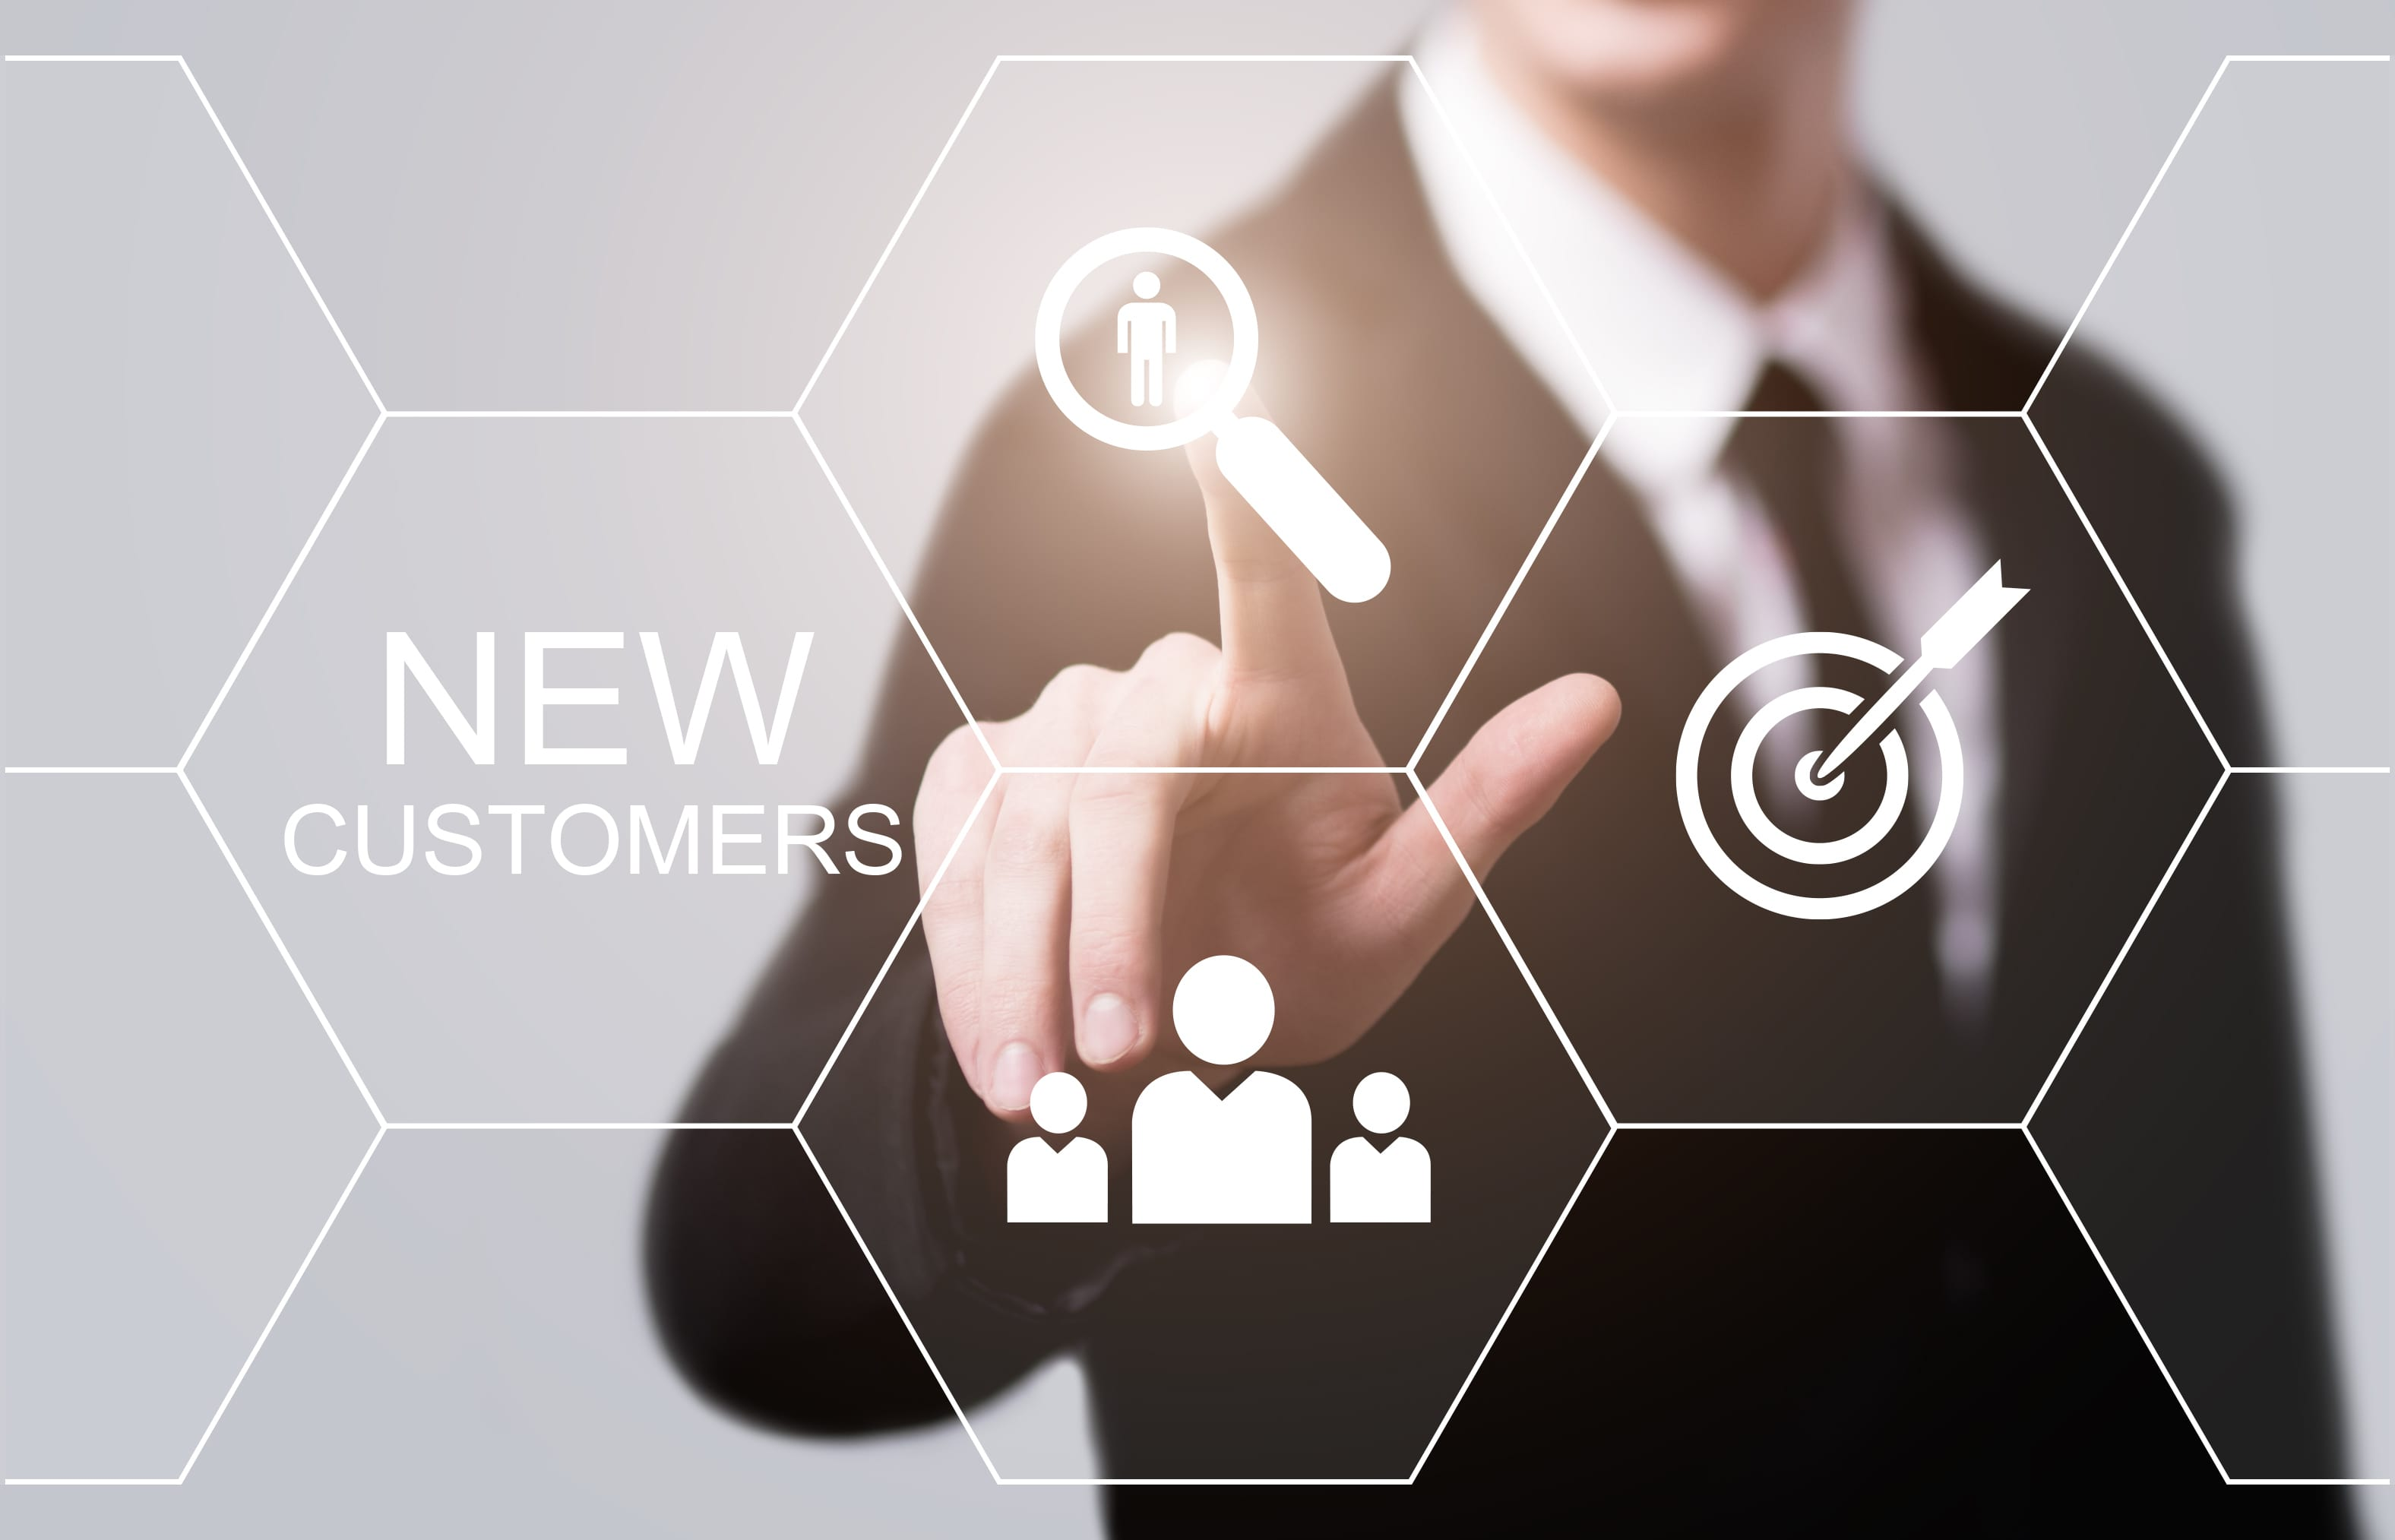 Connect with Leads: How to Find New Prospects